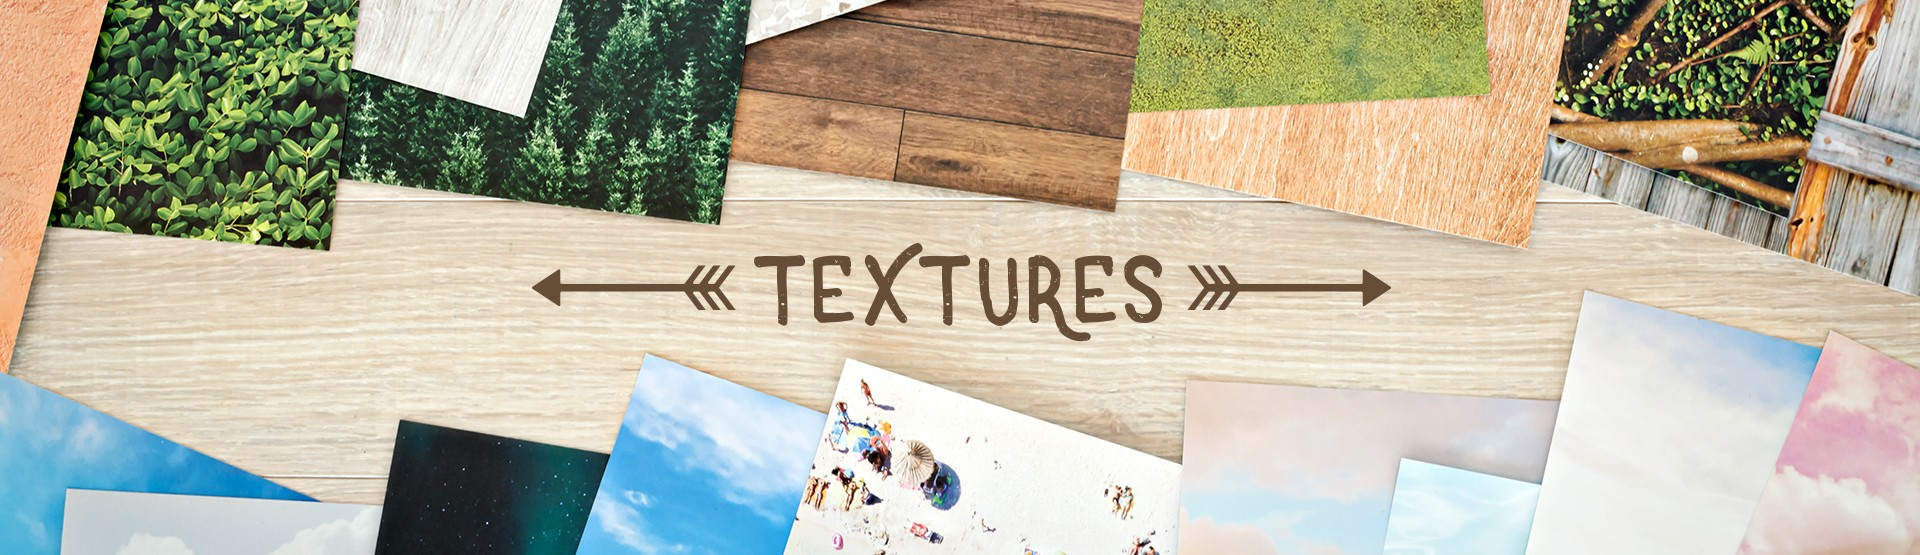 All Occasions: Textures & Textiles